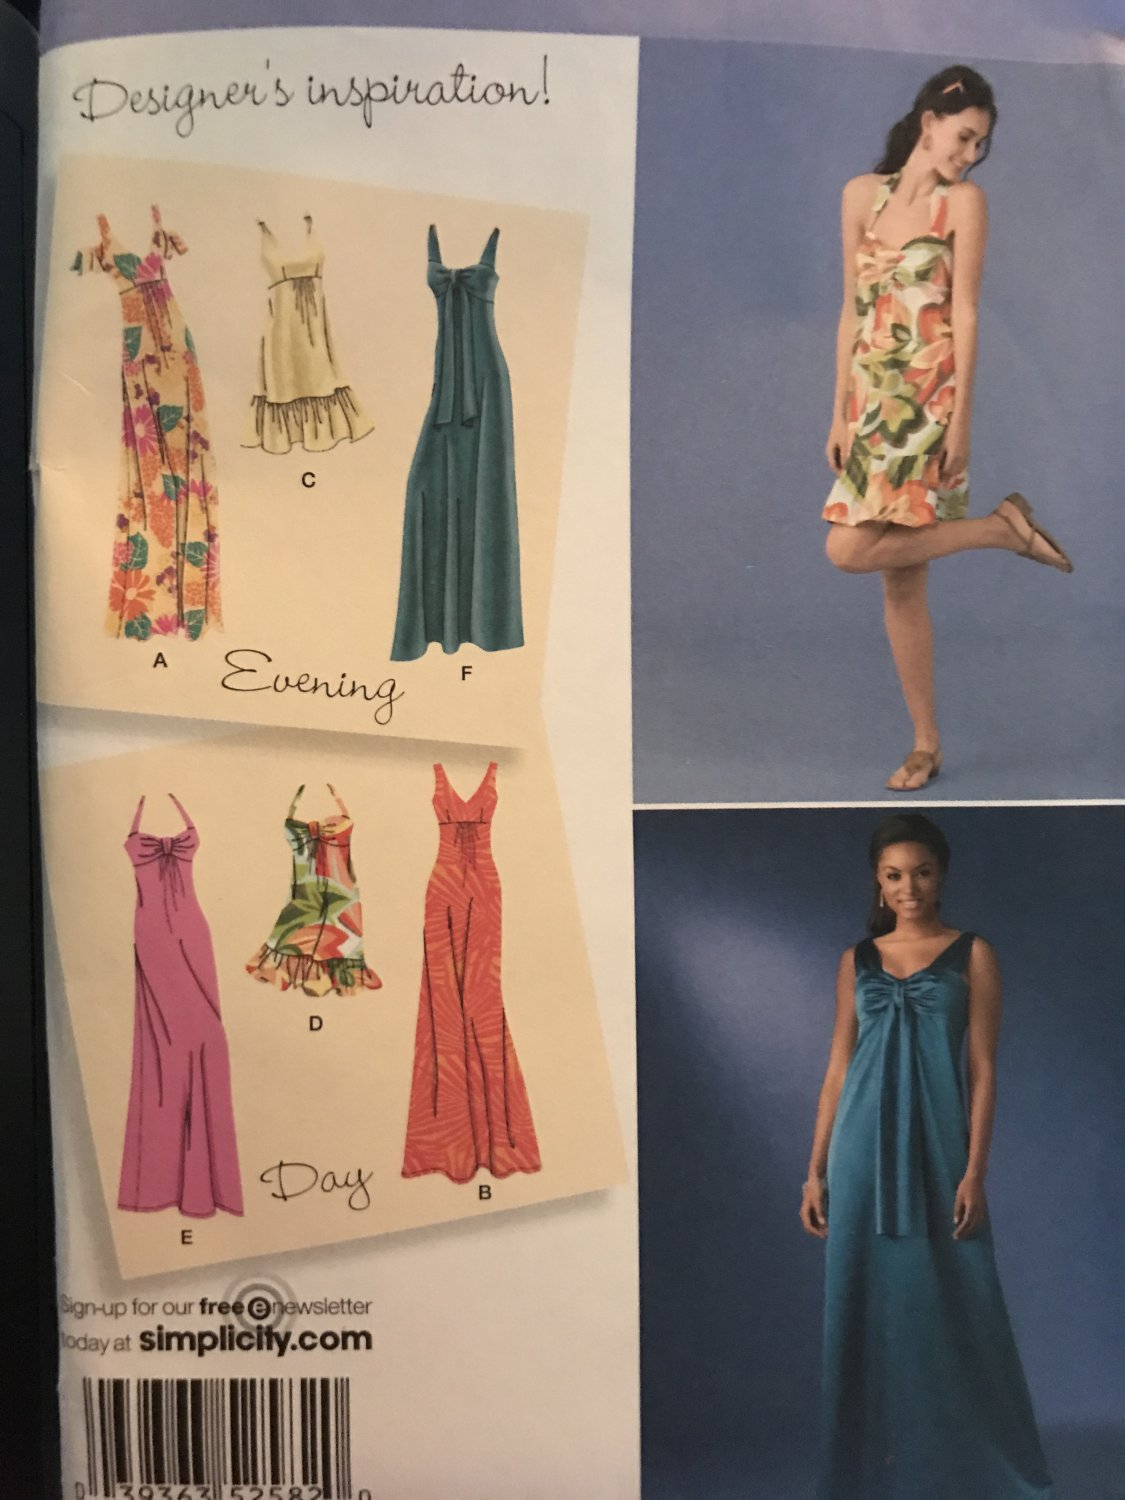 Simplicity 2582 Misses Evening & Day Summer Dress Sewing Pattern Size 6, 10, 12, 14